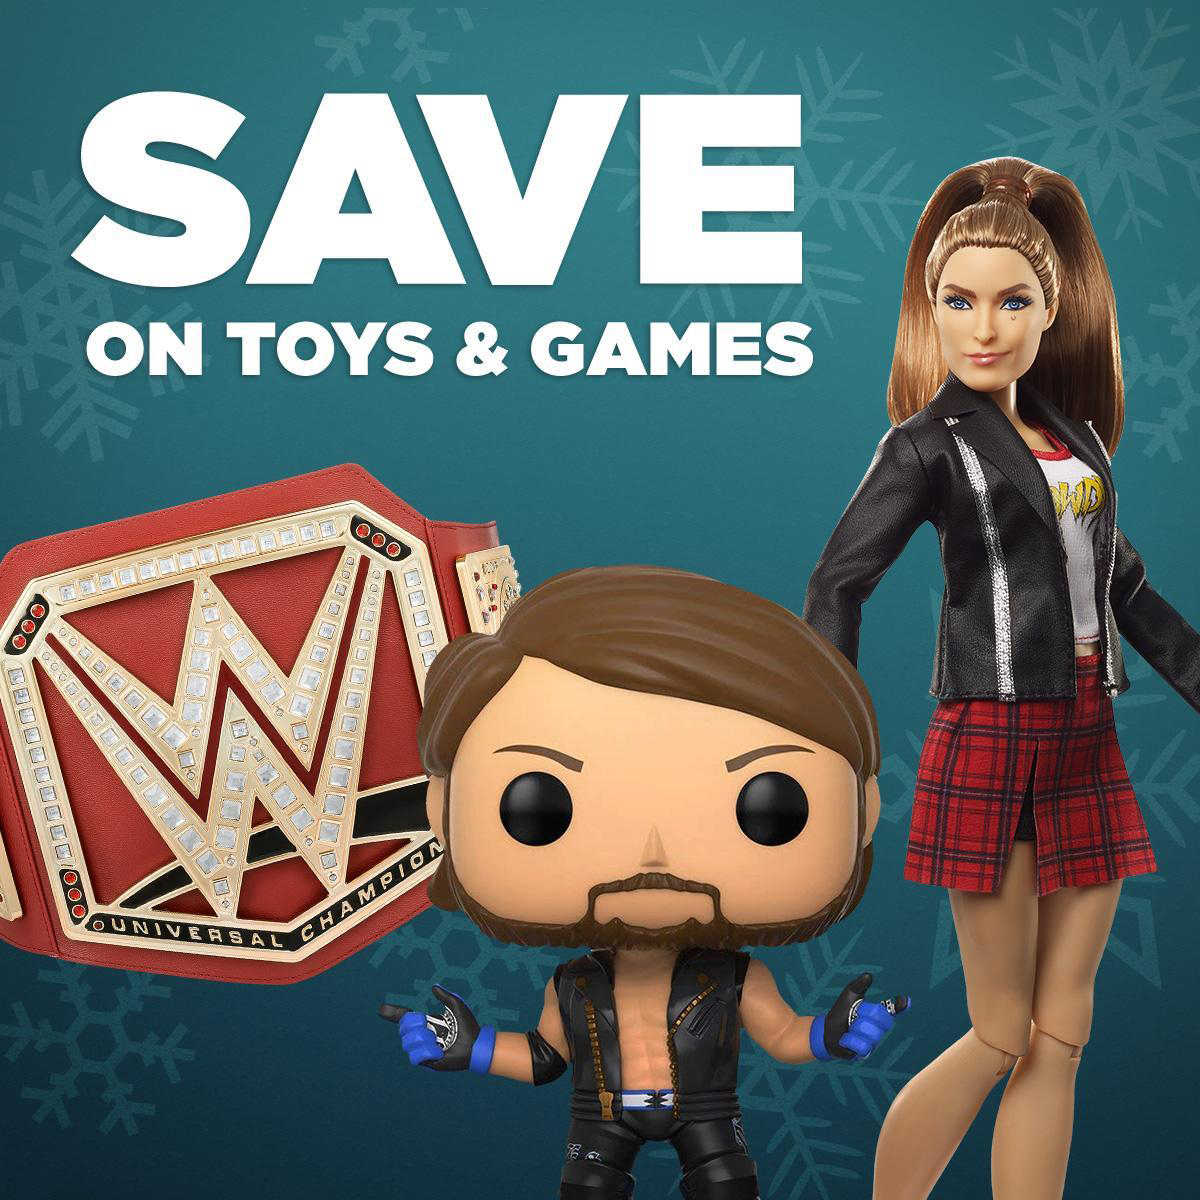 cyber monday 2018 sale at wwe shop up to 75 off tees titles memorabilia more an extra. Black Bedroom Furniture Sets. Home Design Ideas